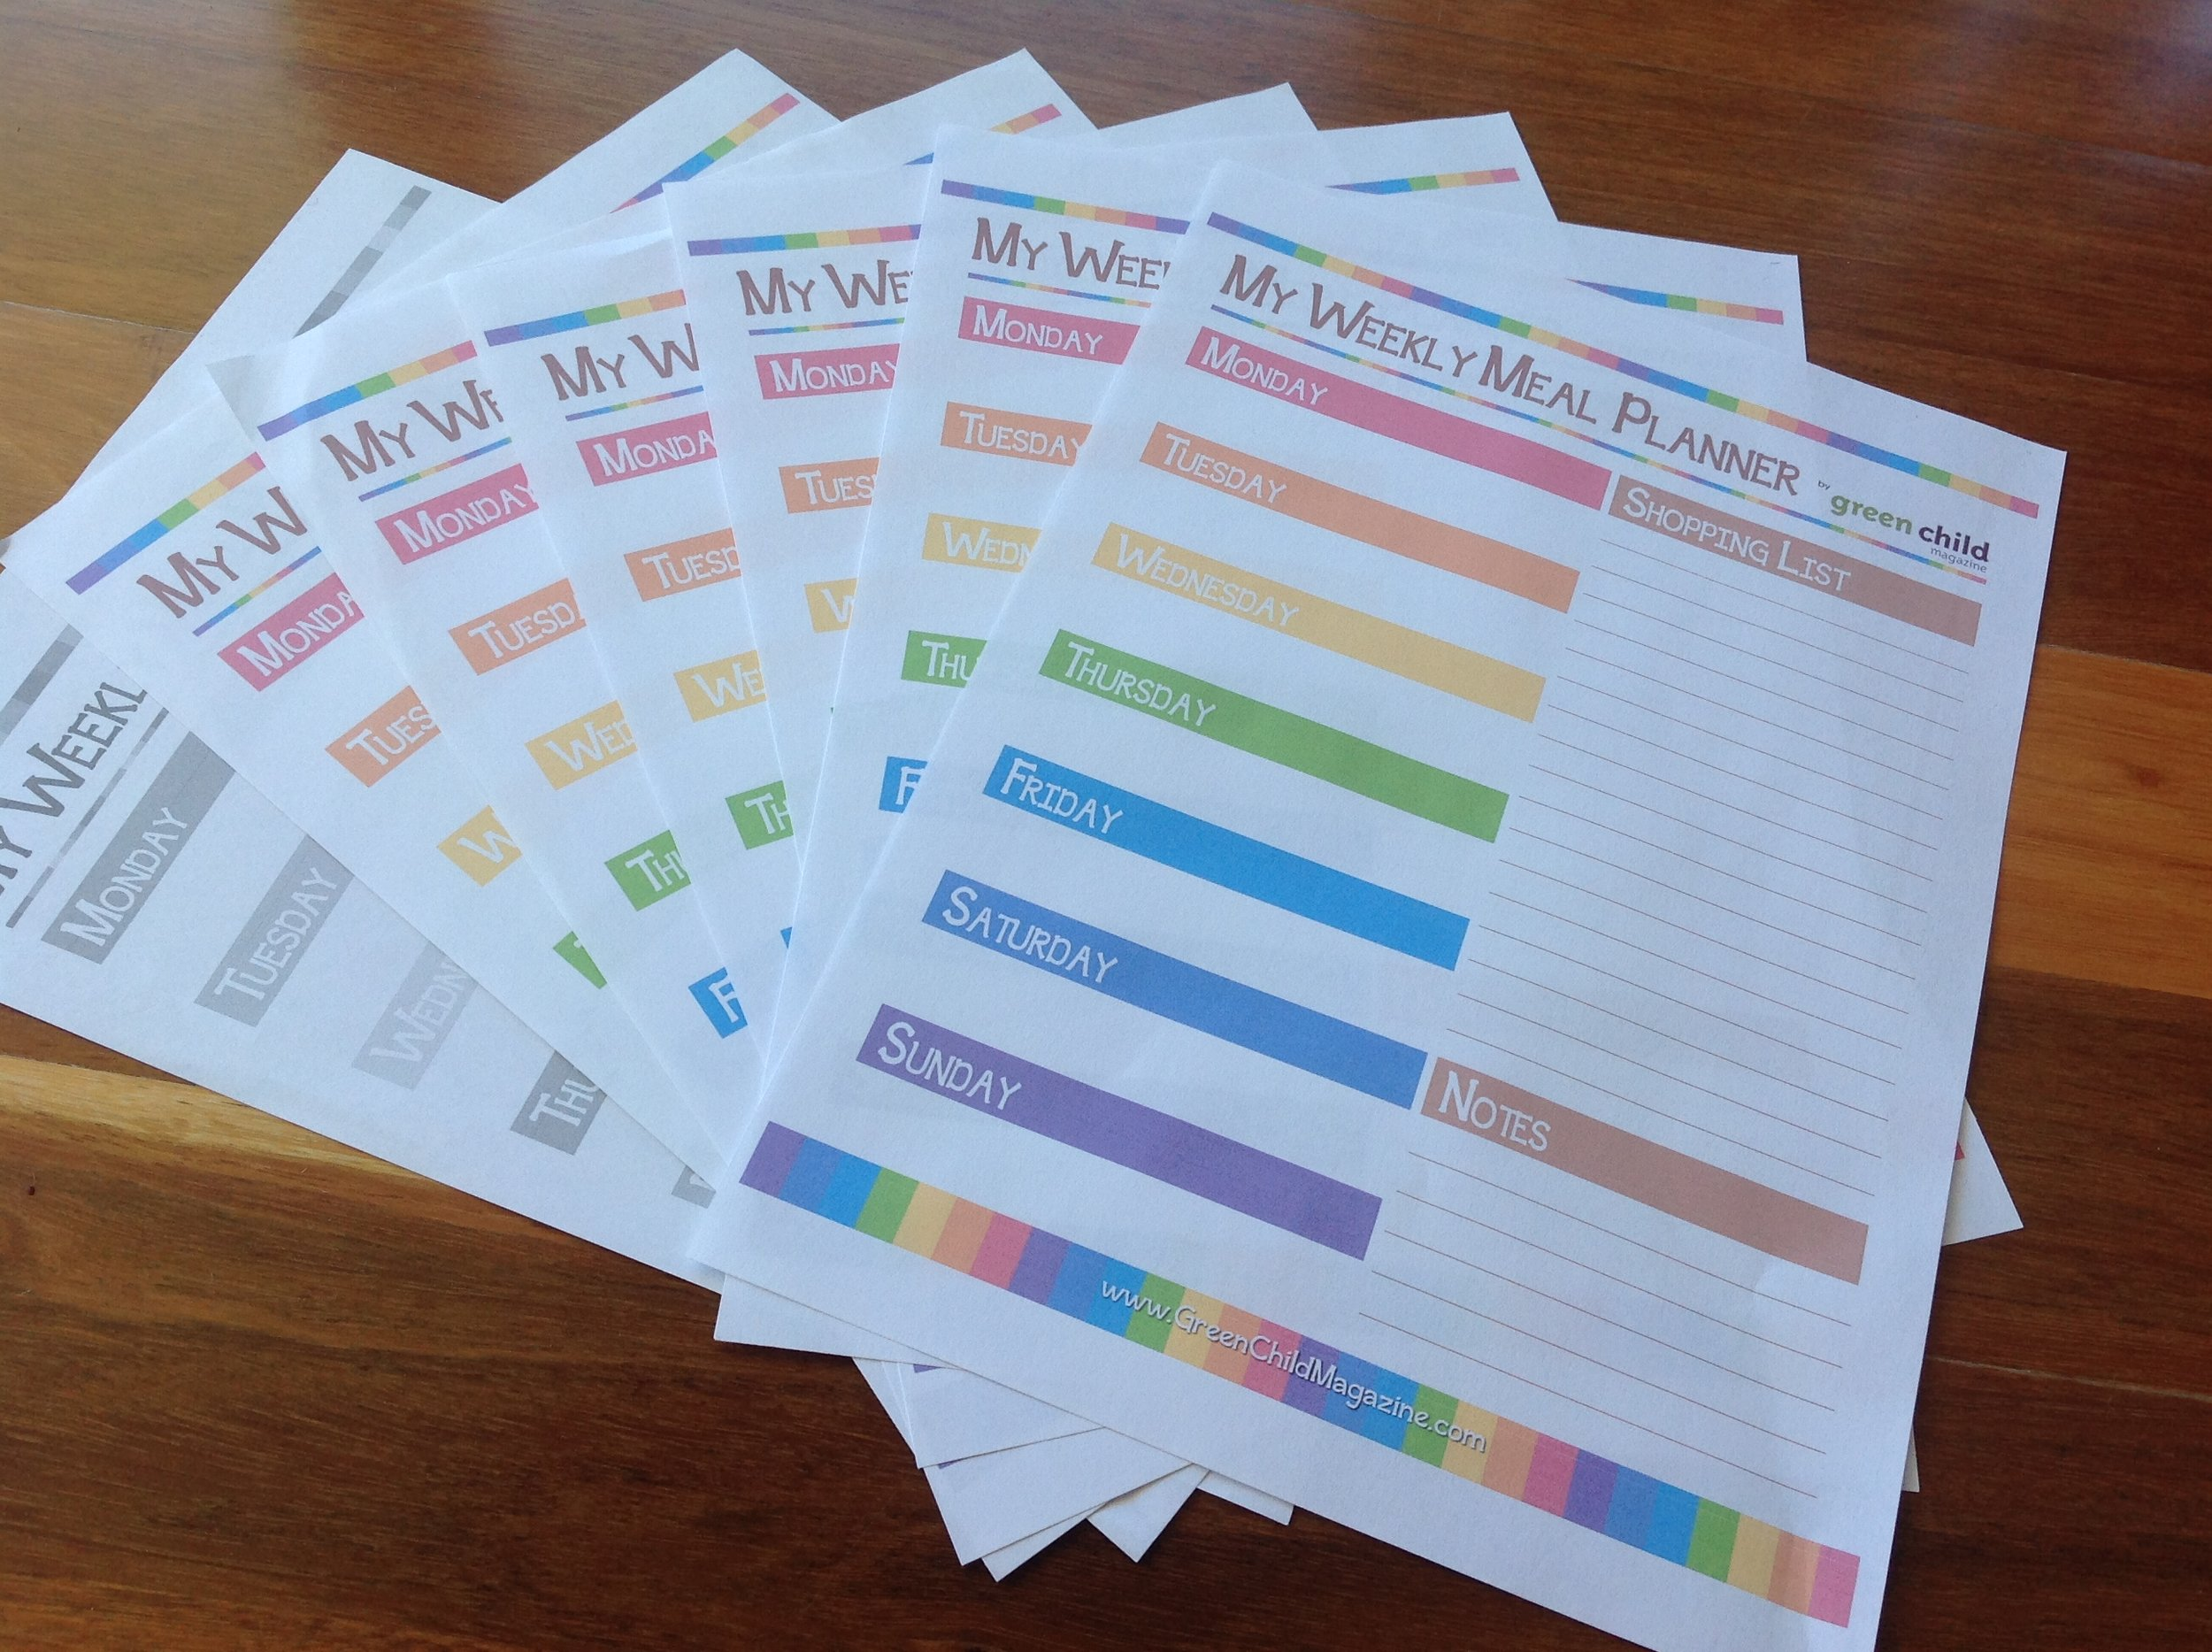 Free printable meal planners in colour